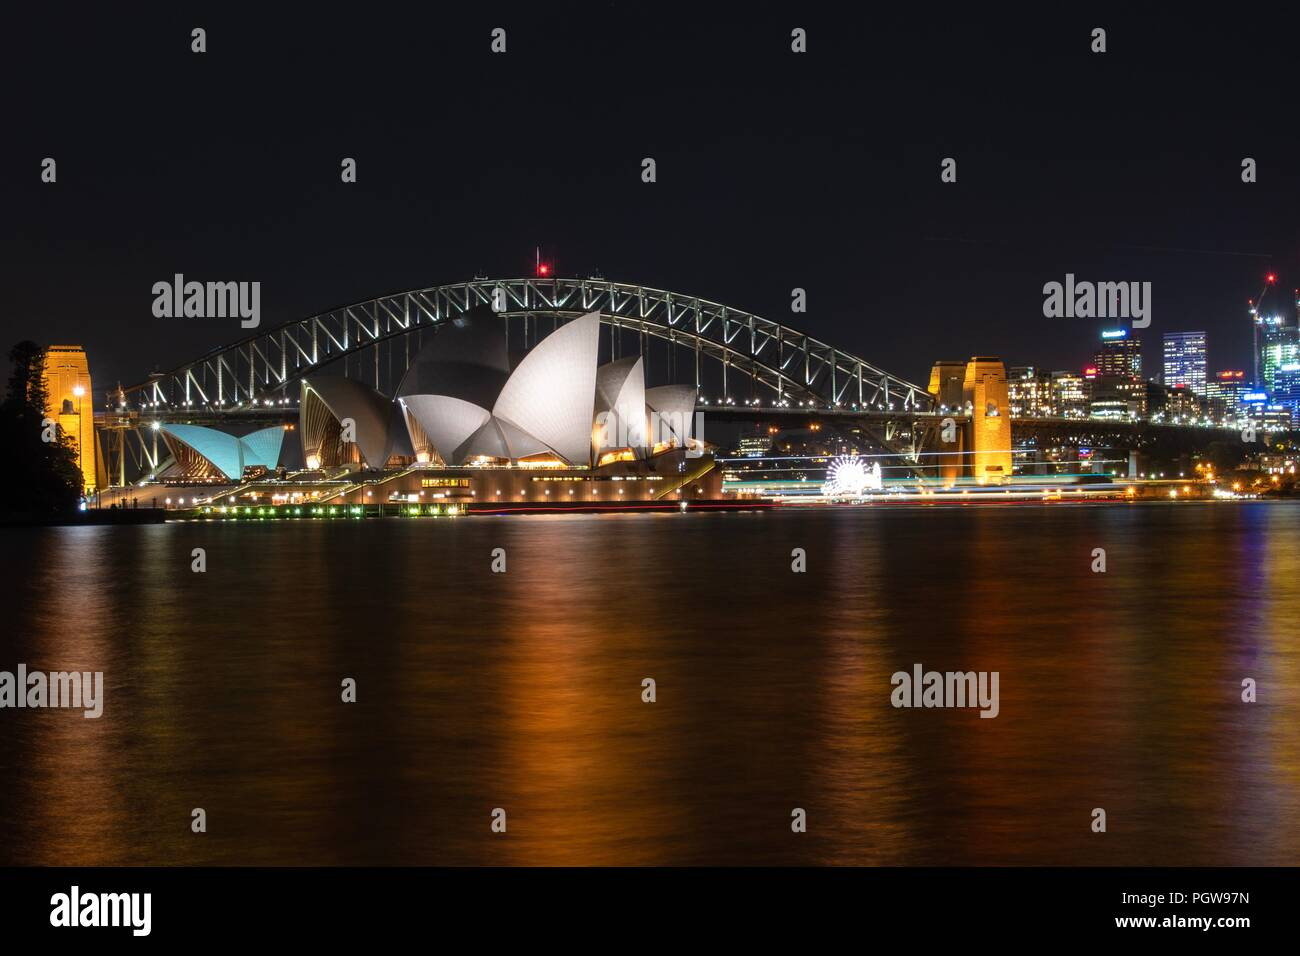 Harbour Bridge an Opera House at night, Sydney NSW Australia - Stock Image